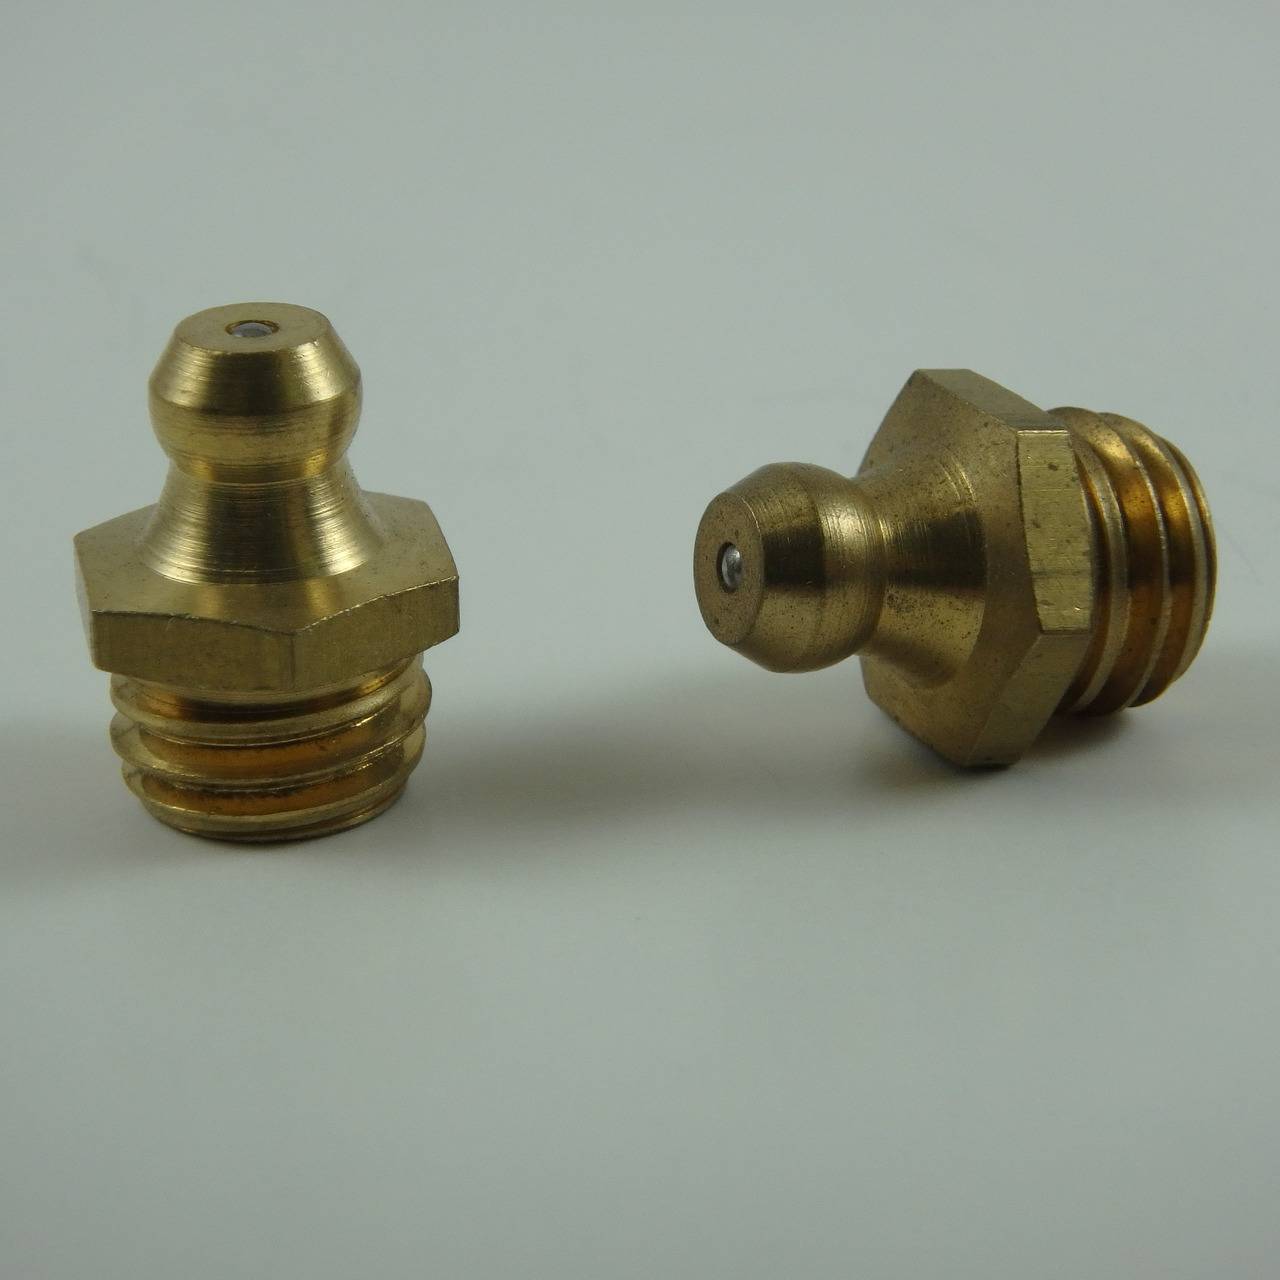 M12 x 1.5mm Straight Brass Metric Grease Zerk Fitting 1 Pc